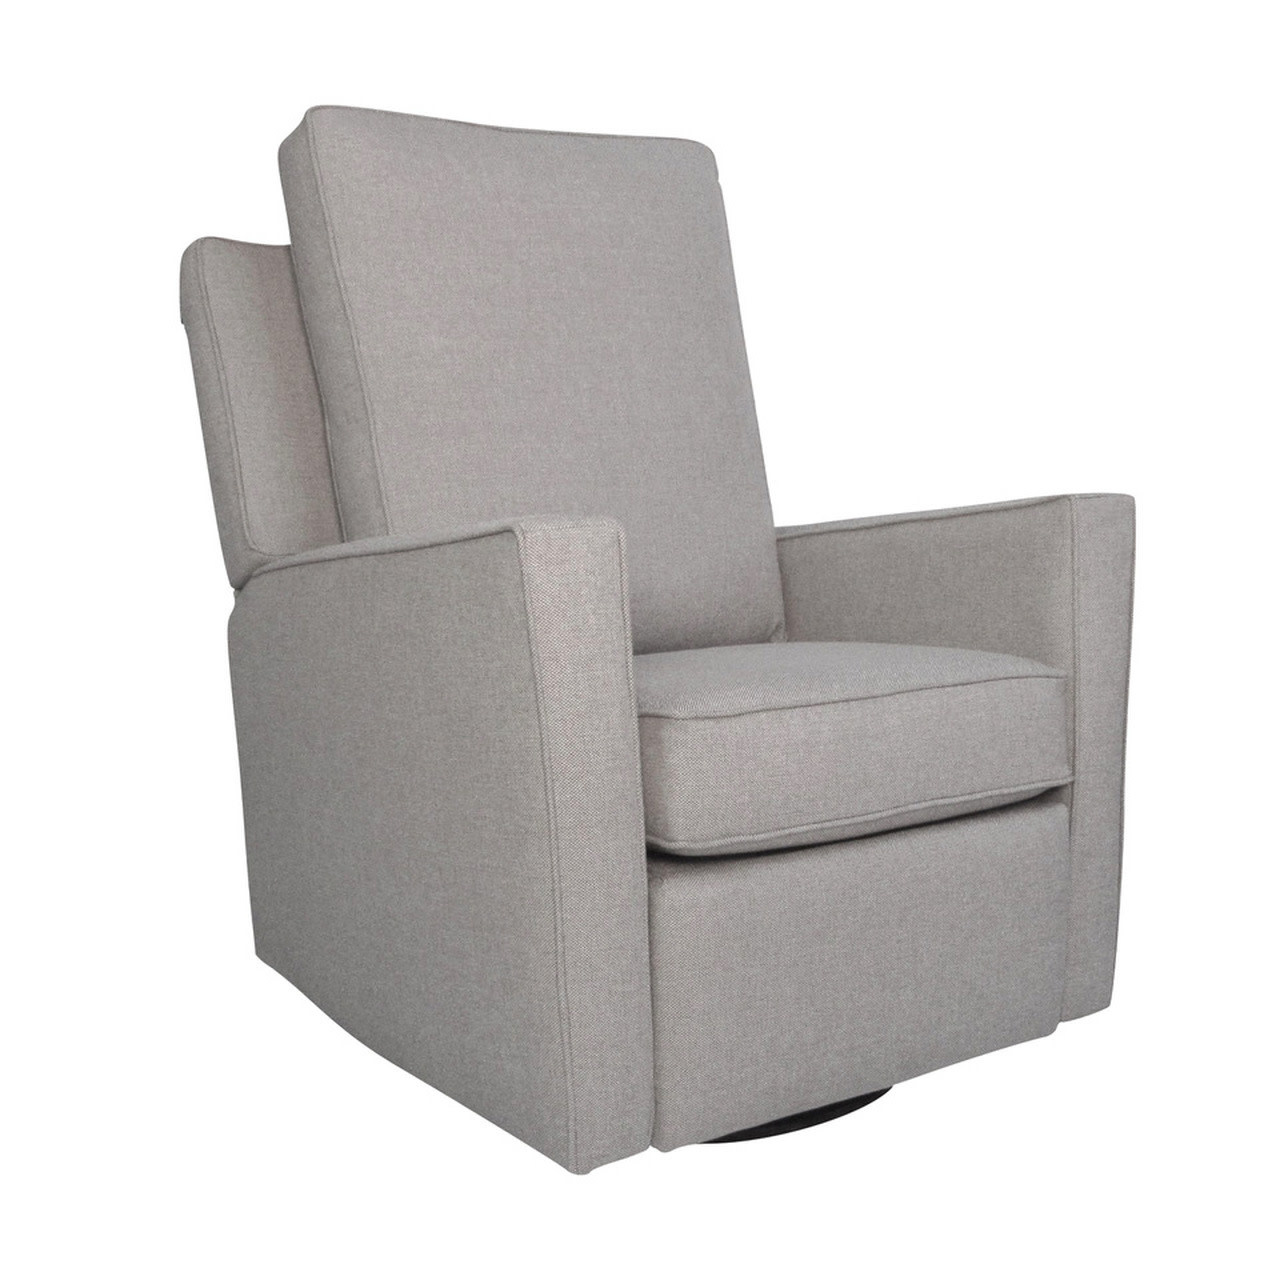 The 1st Chair The 1st Chair, Brisa Recliner, Suiting Grey